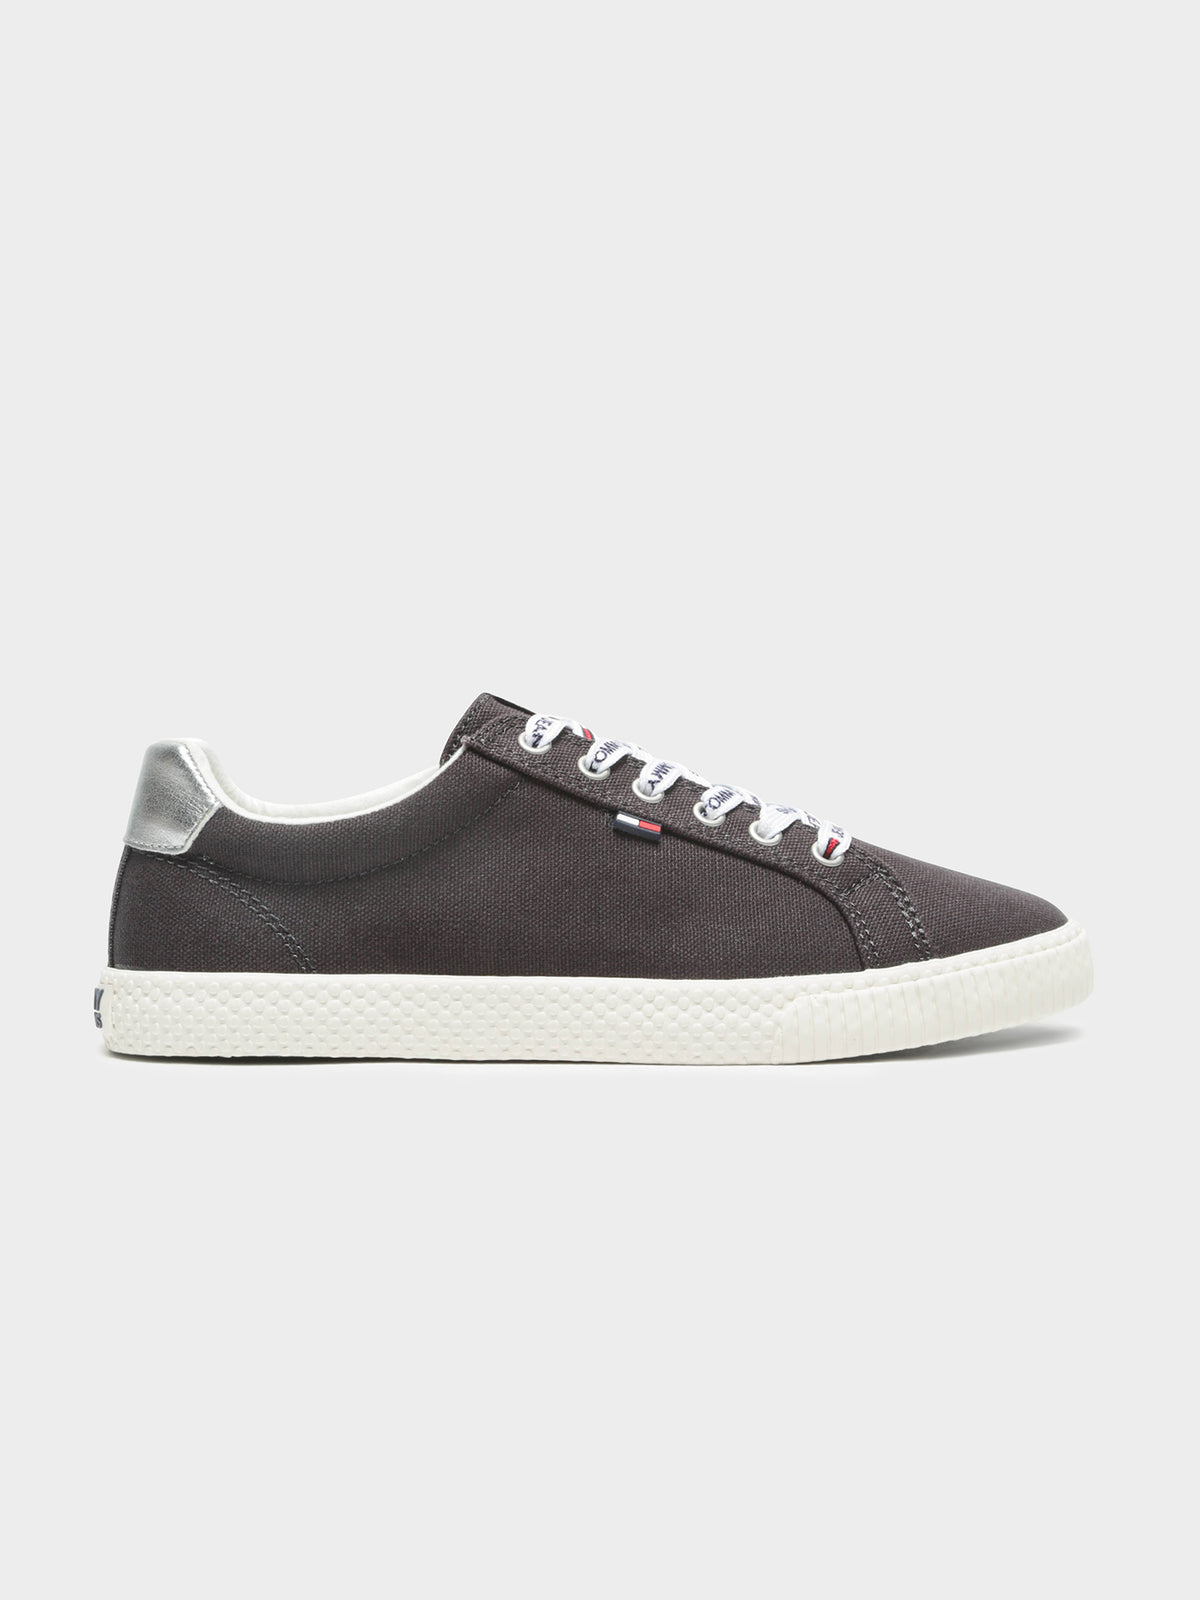 Womens Tommy Jeans Casual Sneaker in Black & White